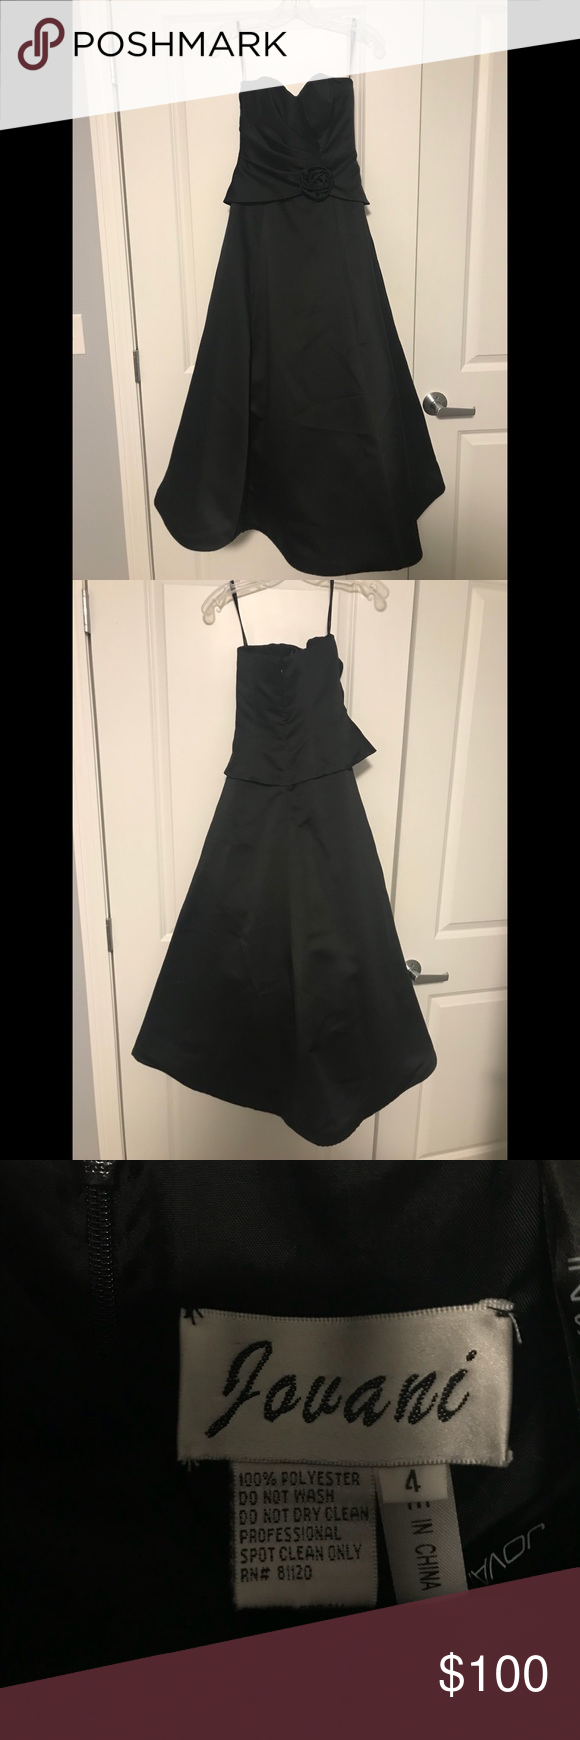 Jovani black strapless prom dress size worn once length inches